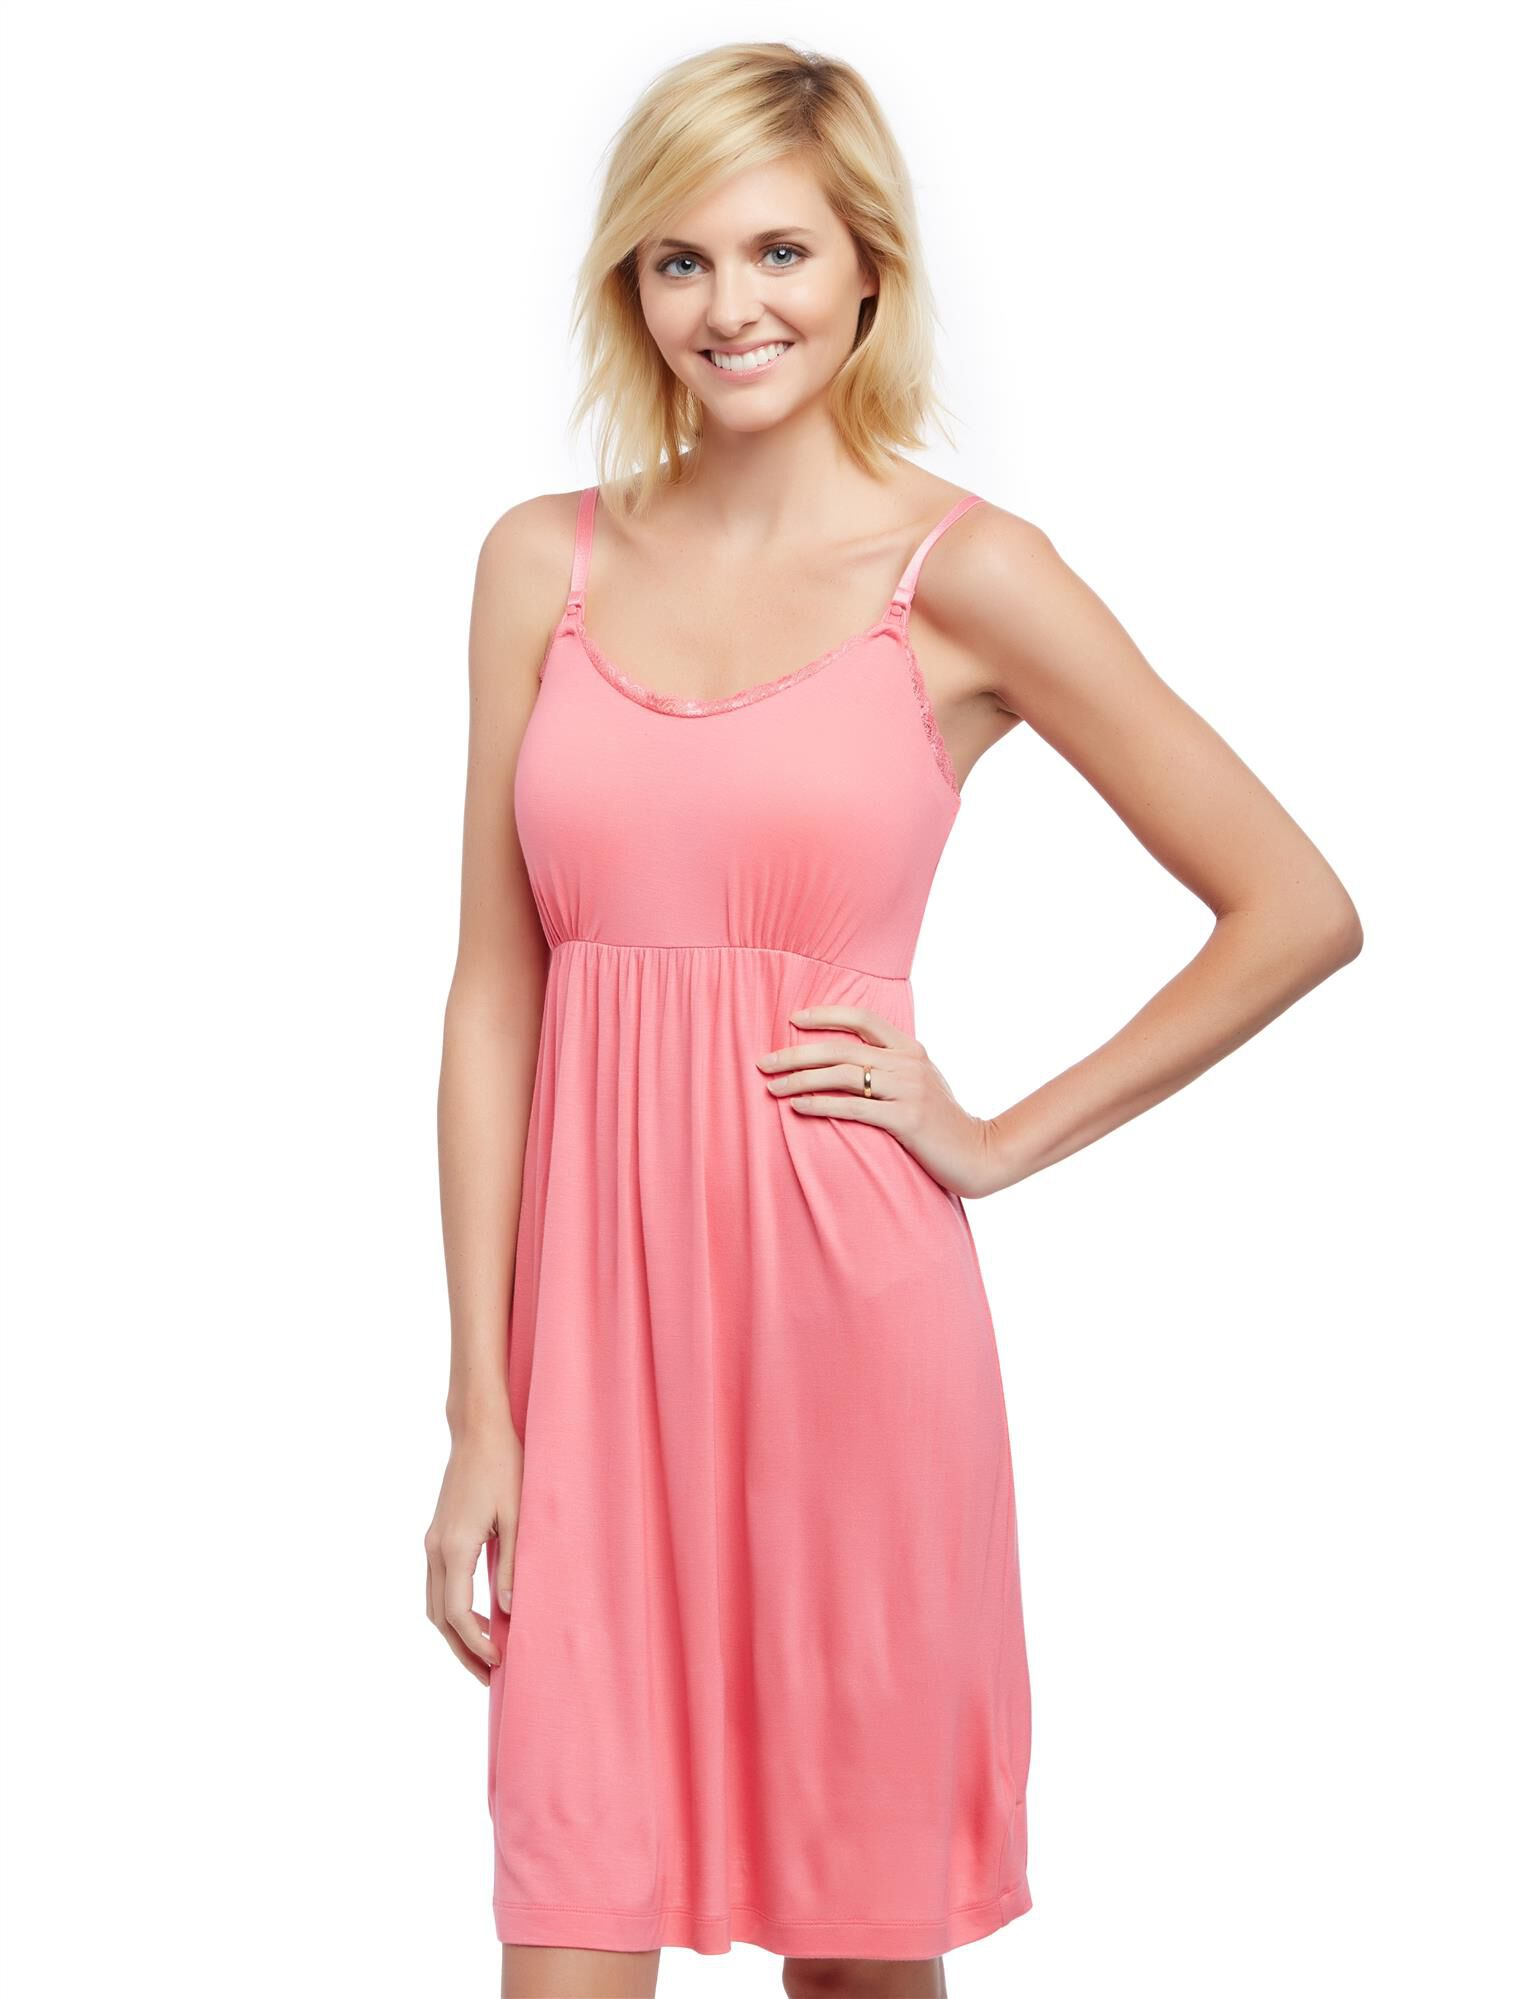 Bump in the Night Nursing Nightgown- Camellia Rose